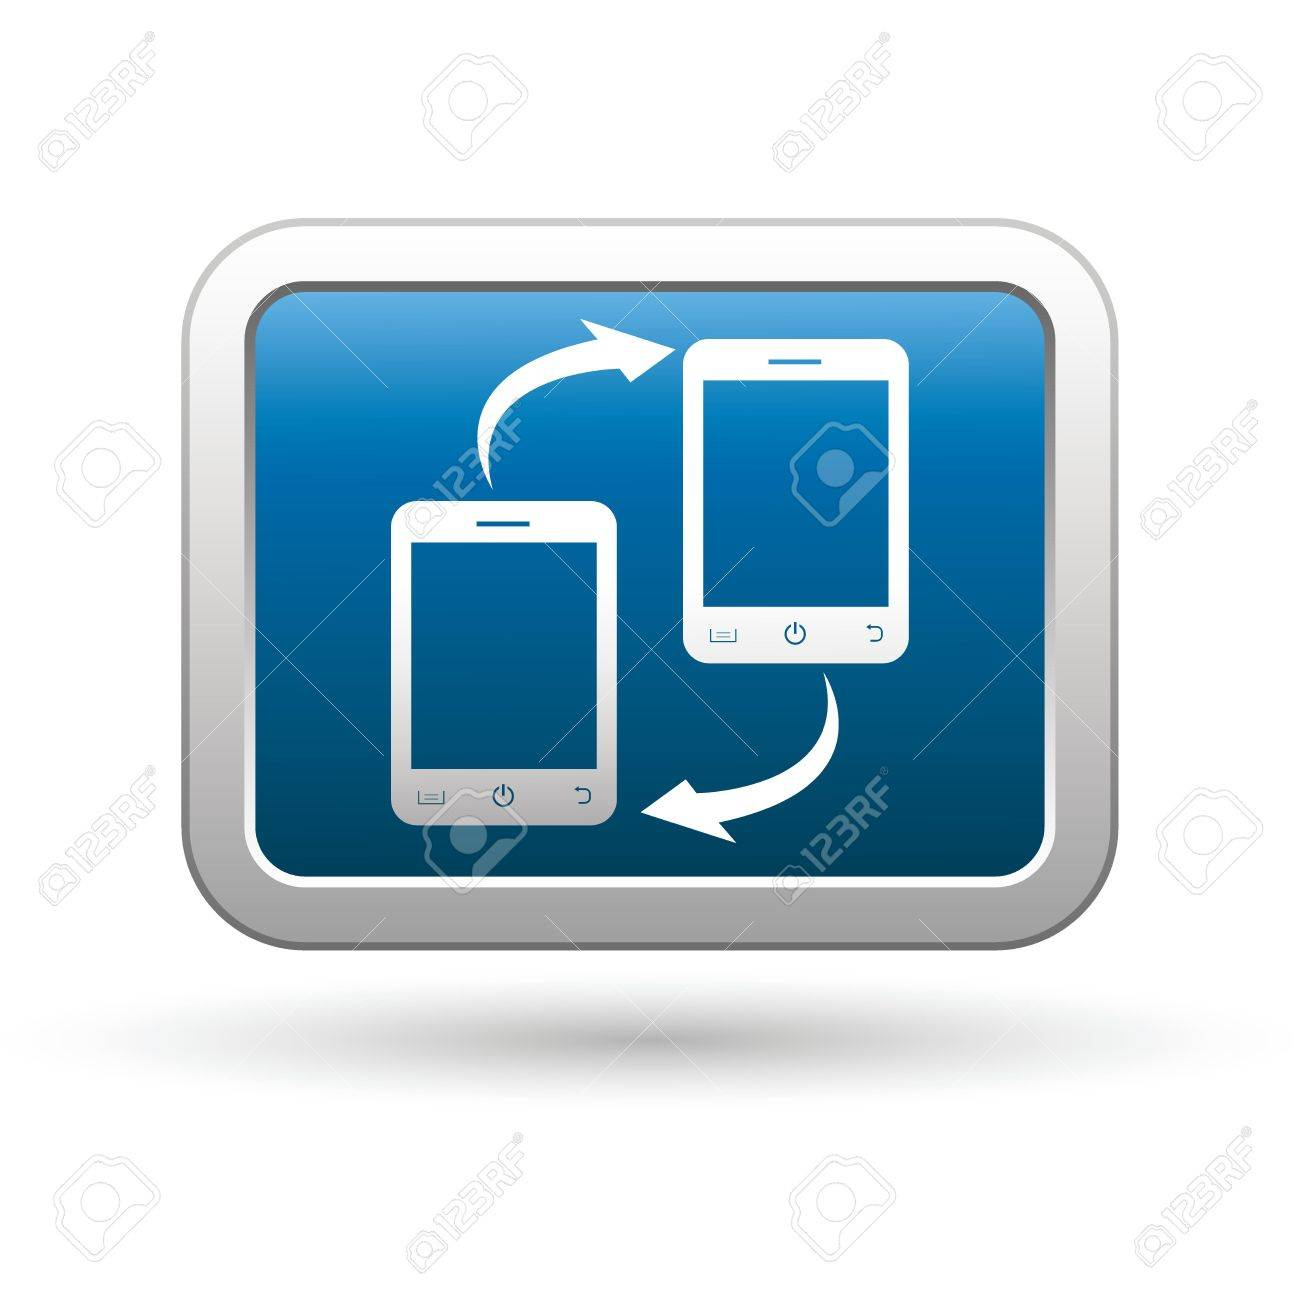 Phone connection icon on the blue with silver rectangular button  Vector illustration Stock Vector - 18406682